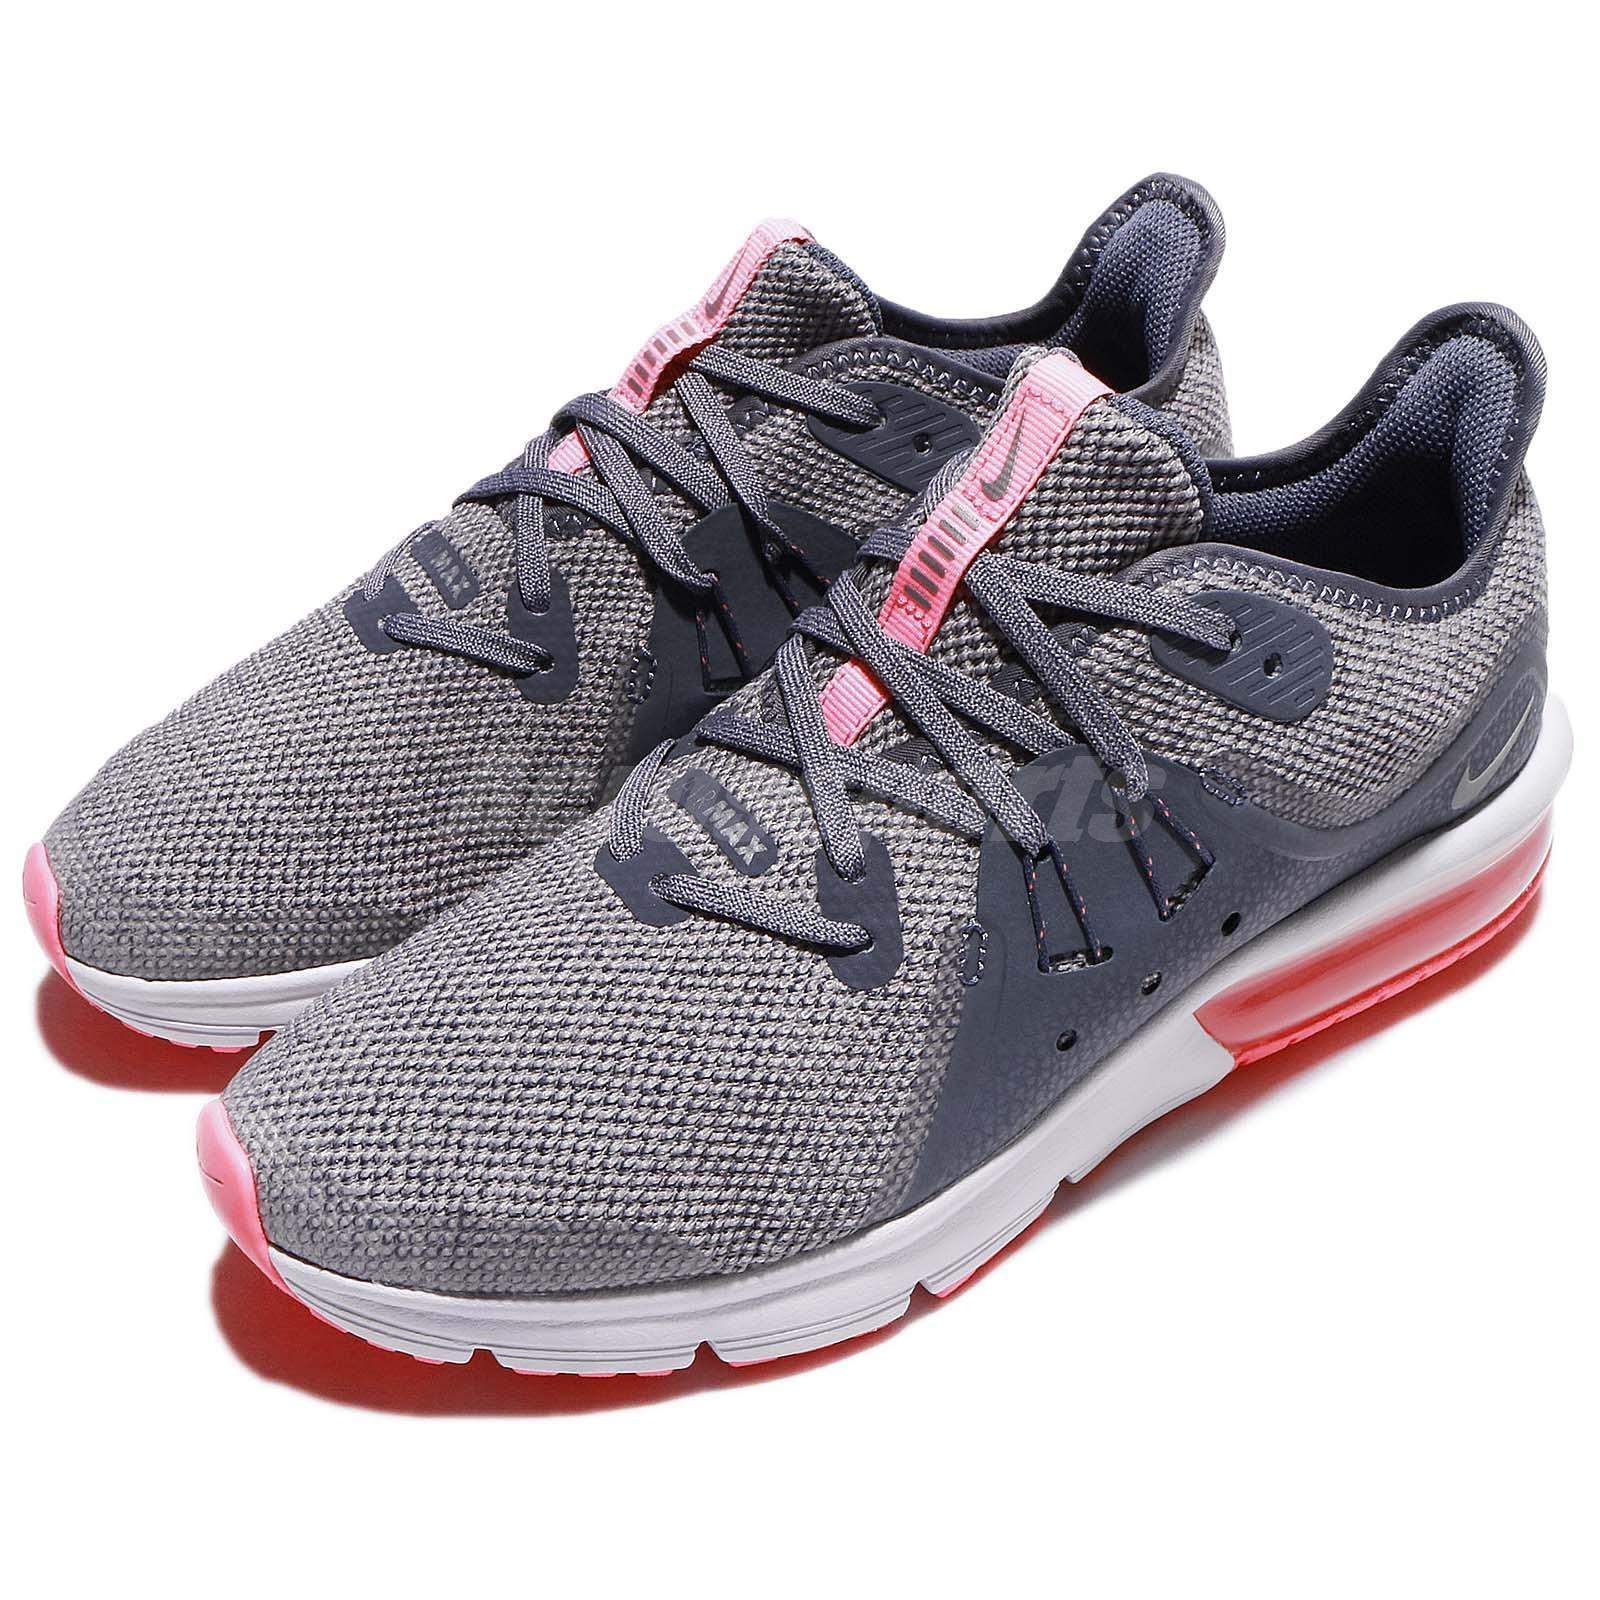 Nike Air Max Sequent 3 GS Grey Pink Youth Kids Womens Running shoes 922885-003